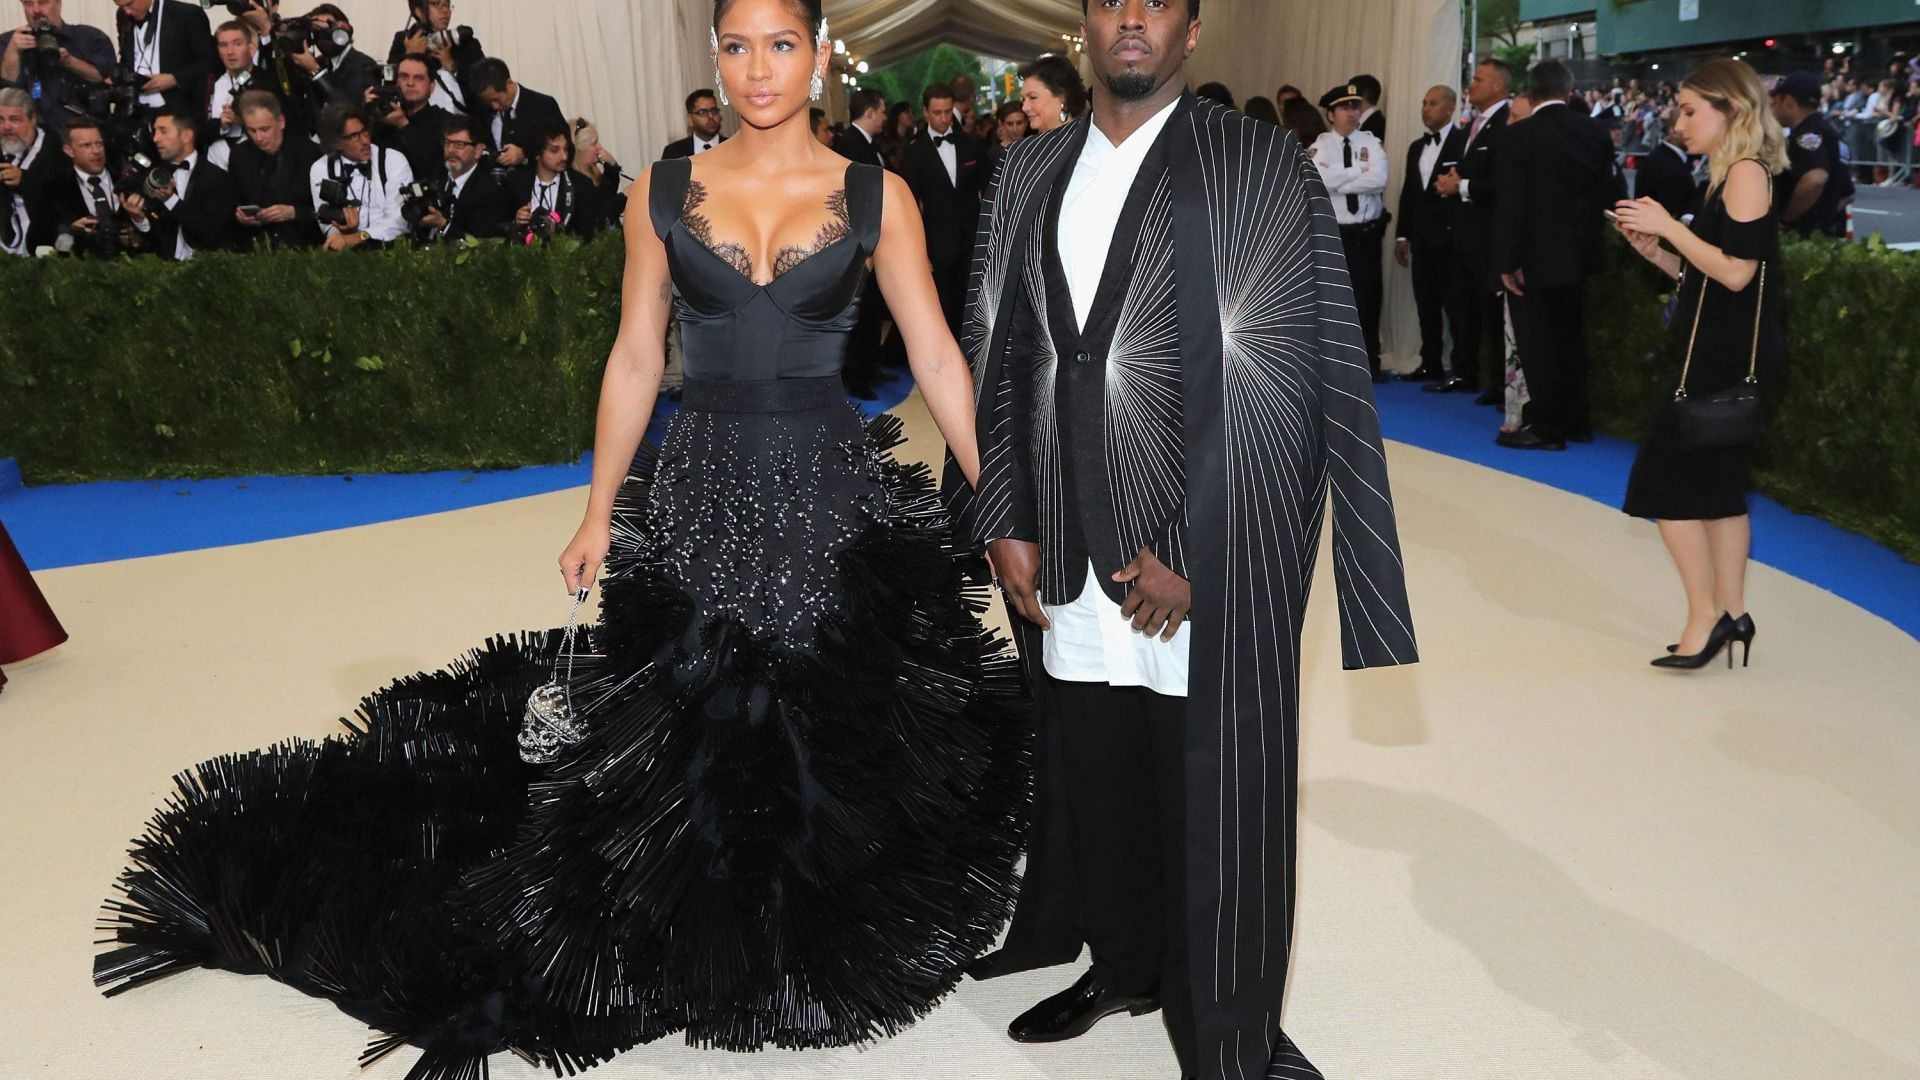 Пи Дидди, Met Gala 2017, костюм, красная дорожка, P Diddy, Met Gala 2017, dress, red carpet (horizontal)